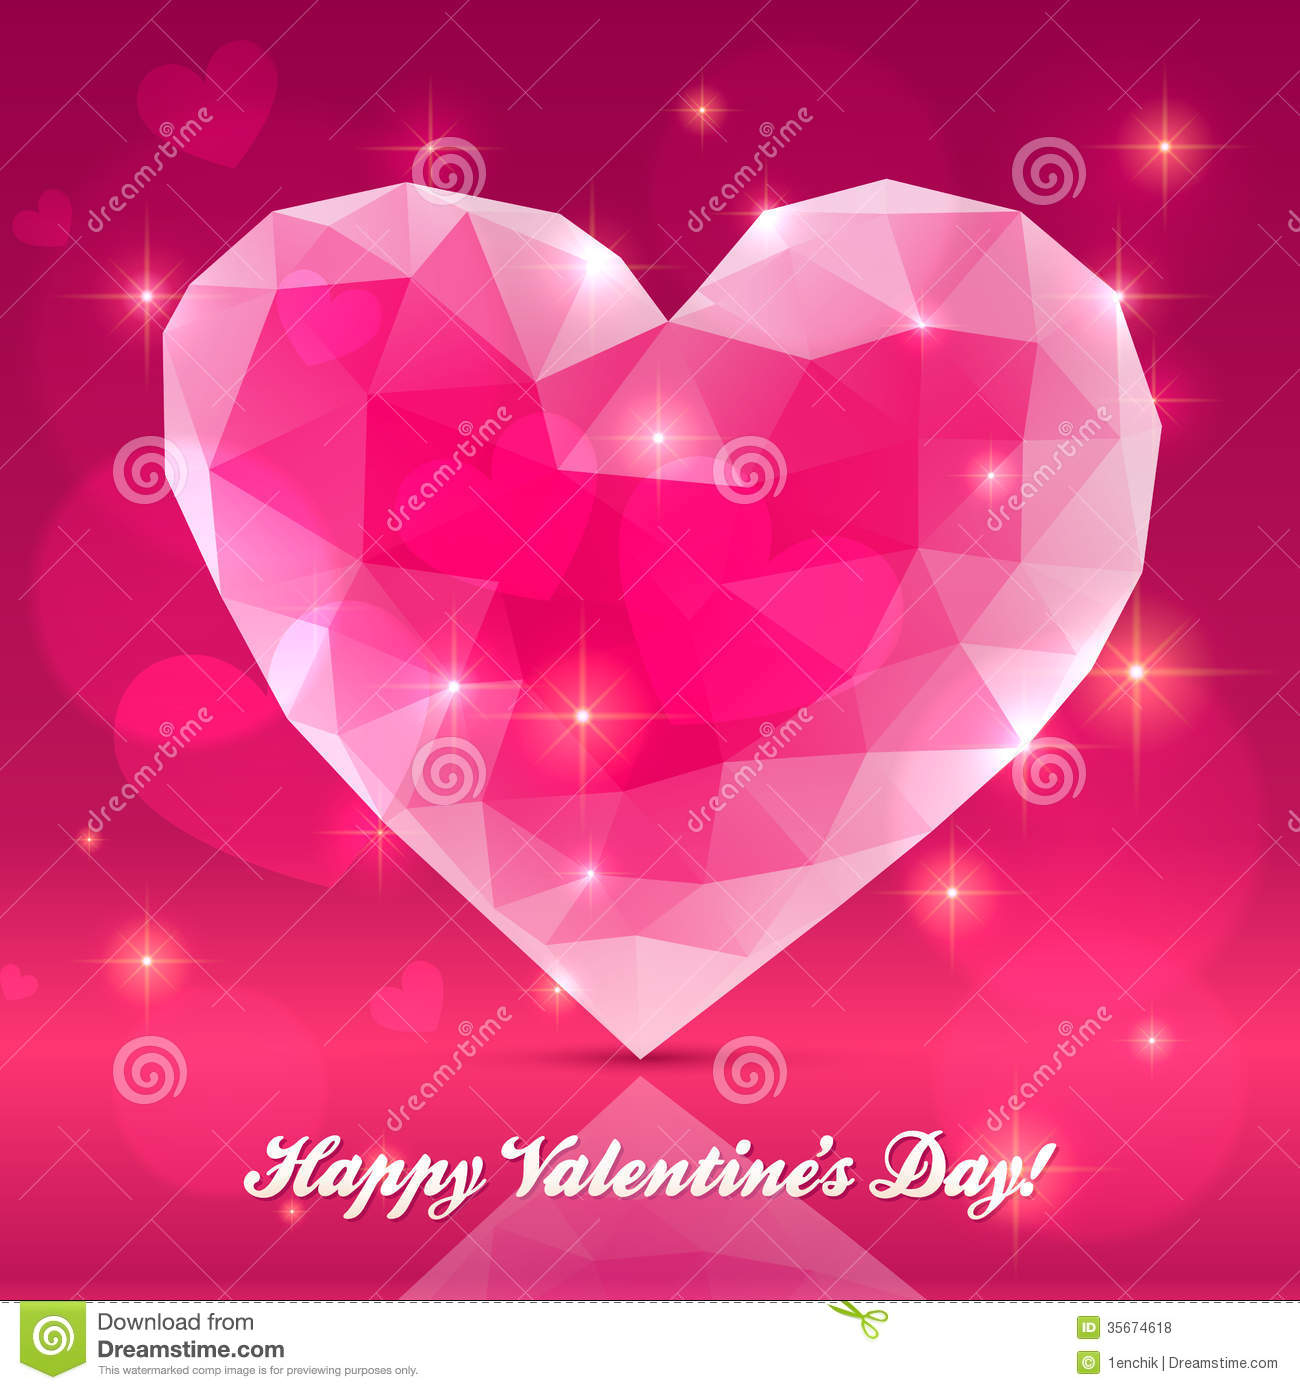 Royalty Free Stock Photos Pink Transparent Crystal Heart Vector Greeting Card Image35674618 on Diamond Transparent Icon